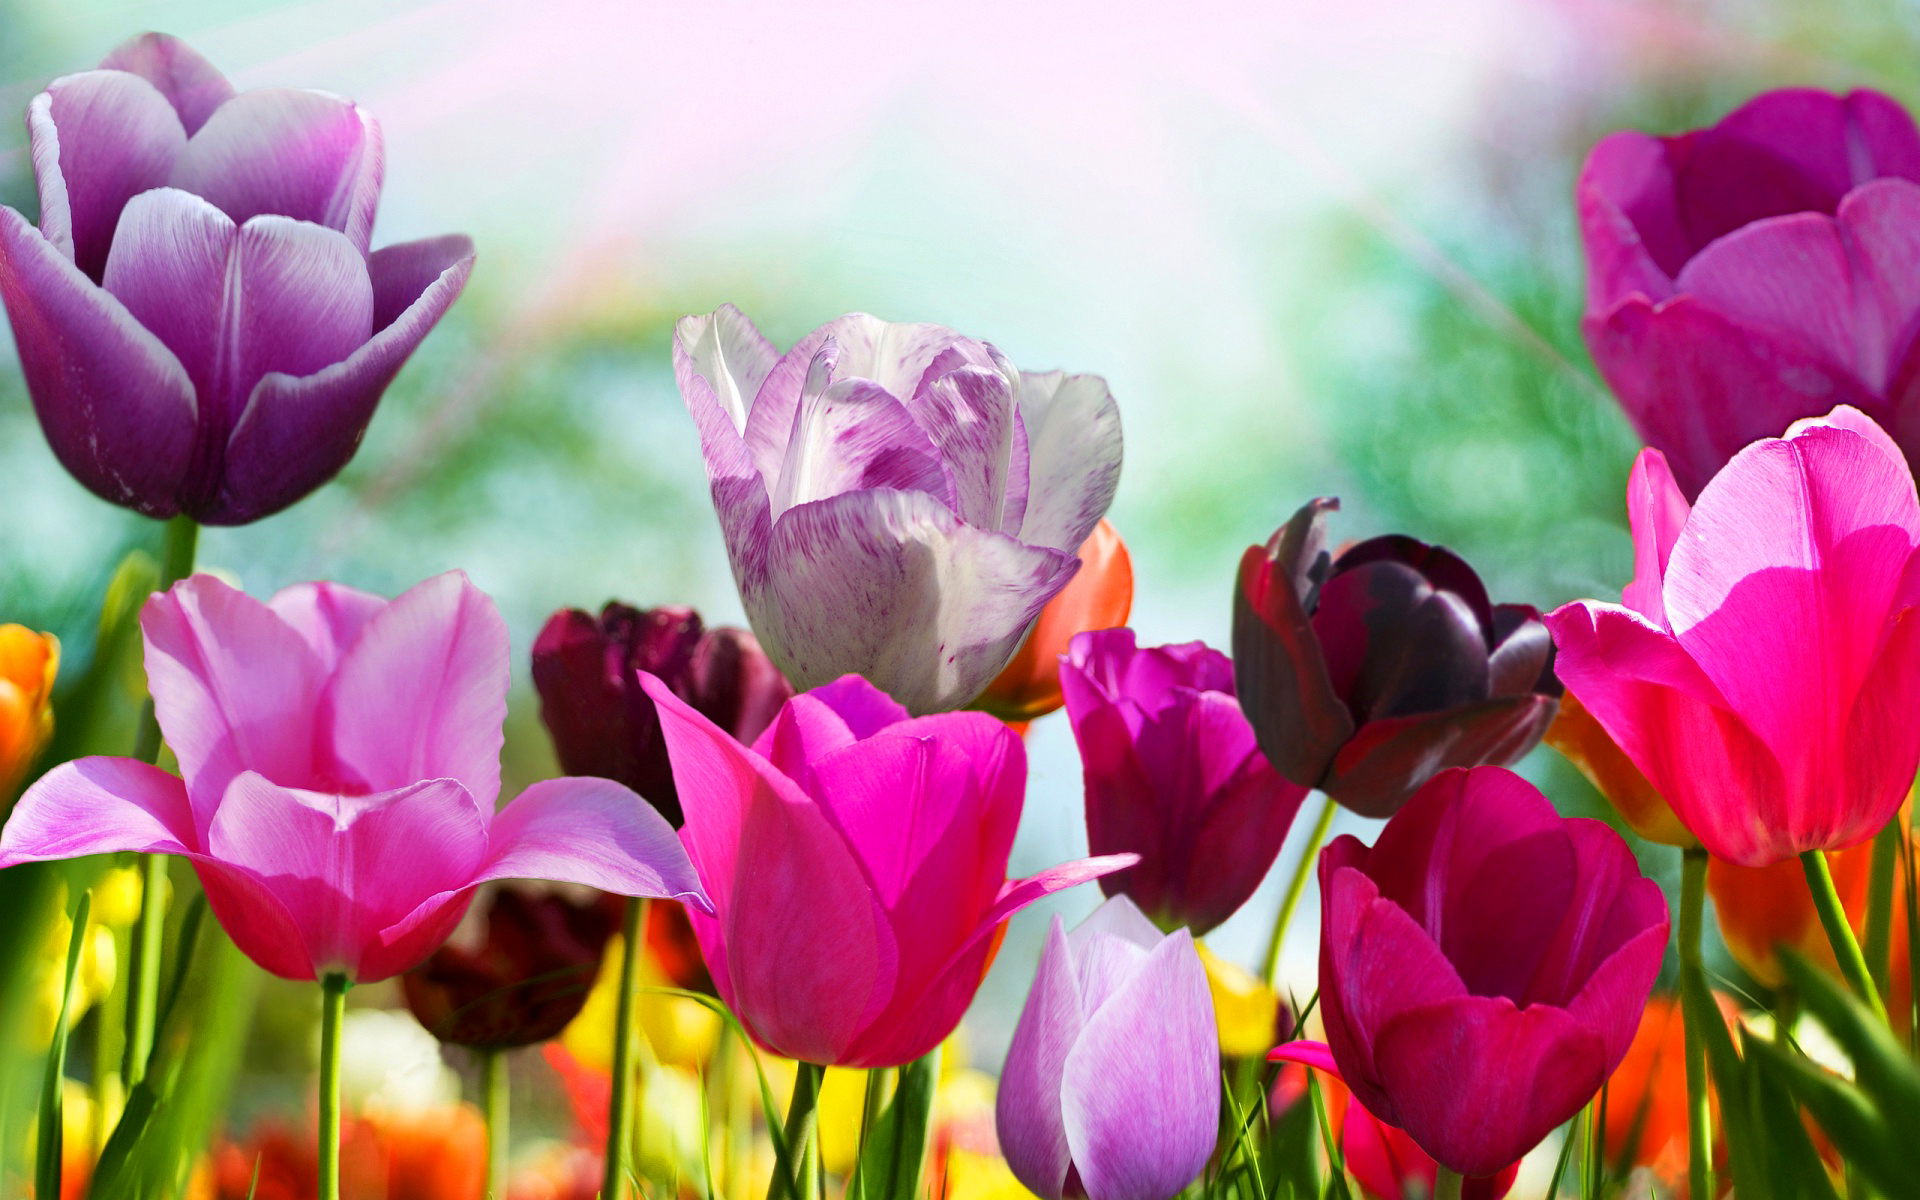 Wallpaper hd spring flowers images pic wpb00410 wallpaper download mightylinksfo